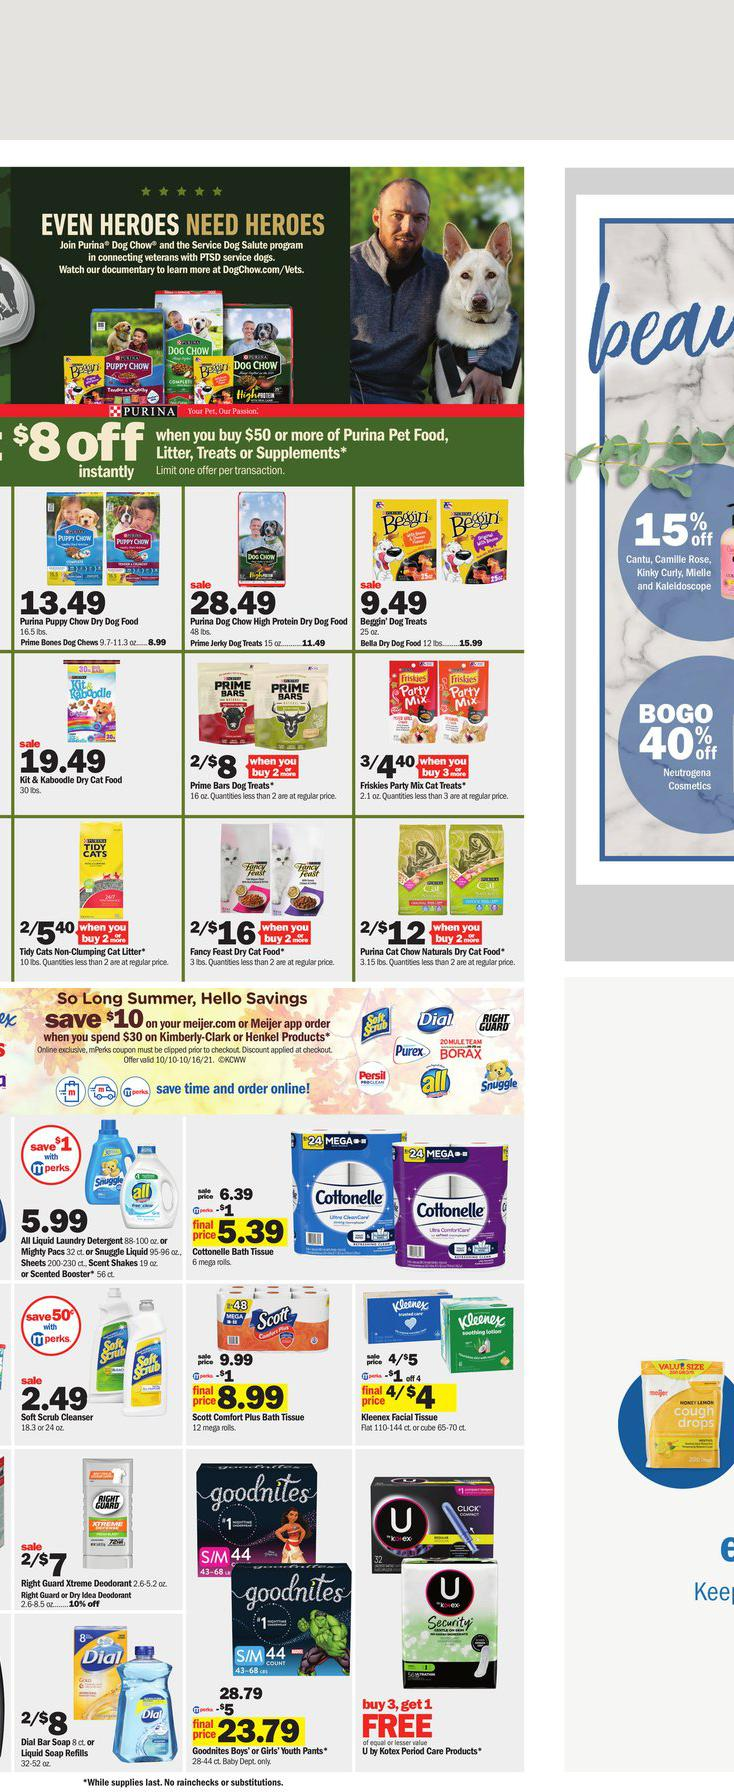 10.10.2021 Meijer ad 17. page